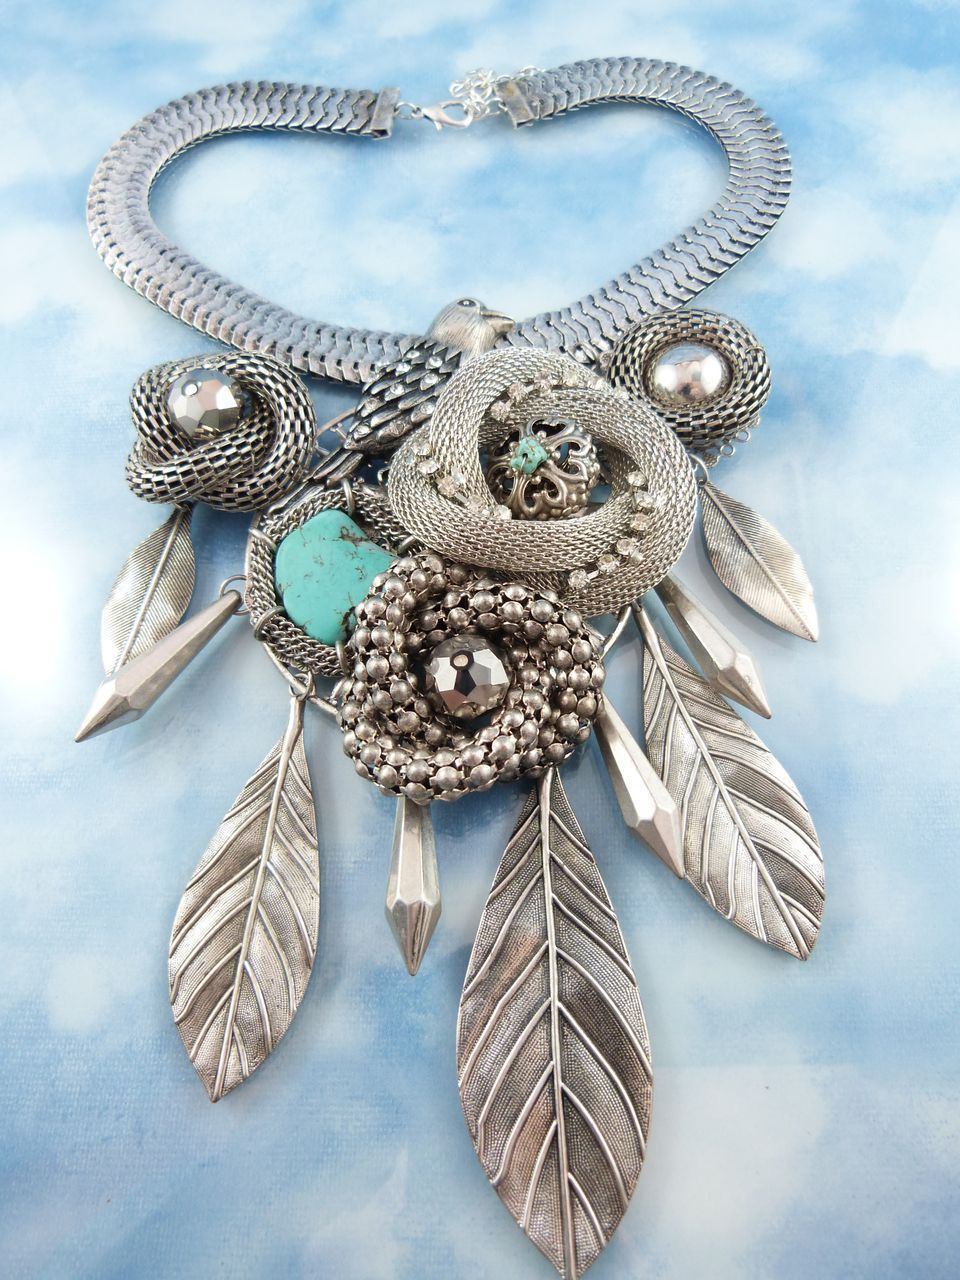 Designer Modernist Bird Sanctuary Silver Tone Crystal Turquoise Statement Runway Necklace